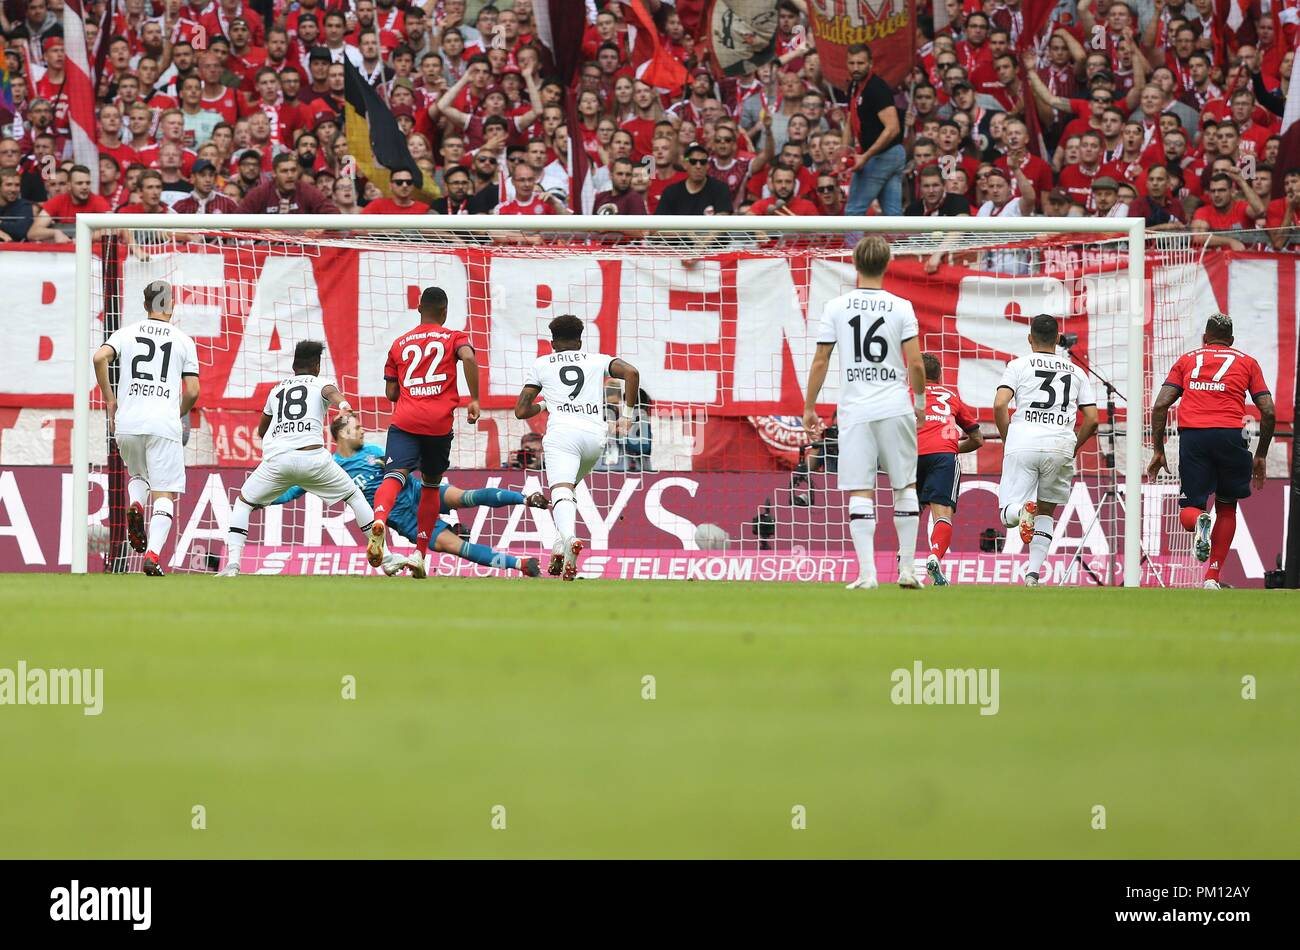 firo: 15.09.2018 Fuvuball, Football: 1.Bundesliga FC Bayern Munich - Bayer 04 Leverkusen, Wendell, Bayer, Leverkusen, Penalty | usage worldwide Stock Photo